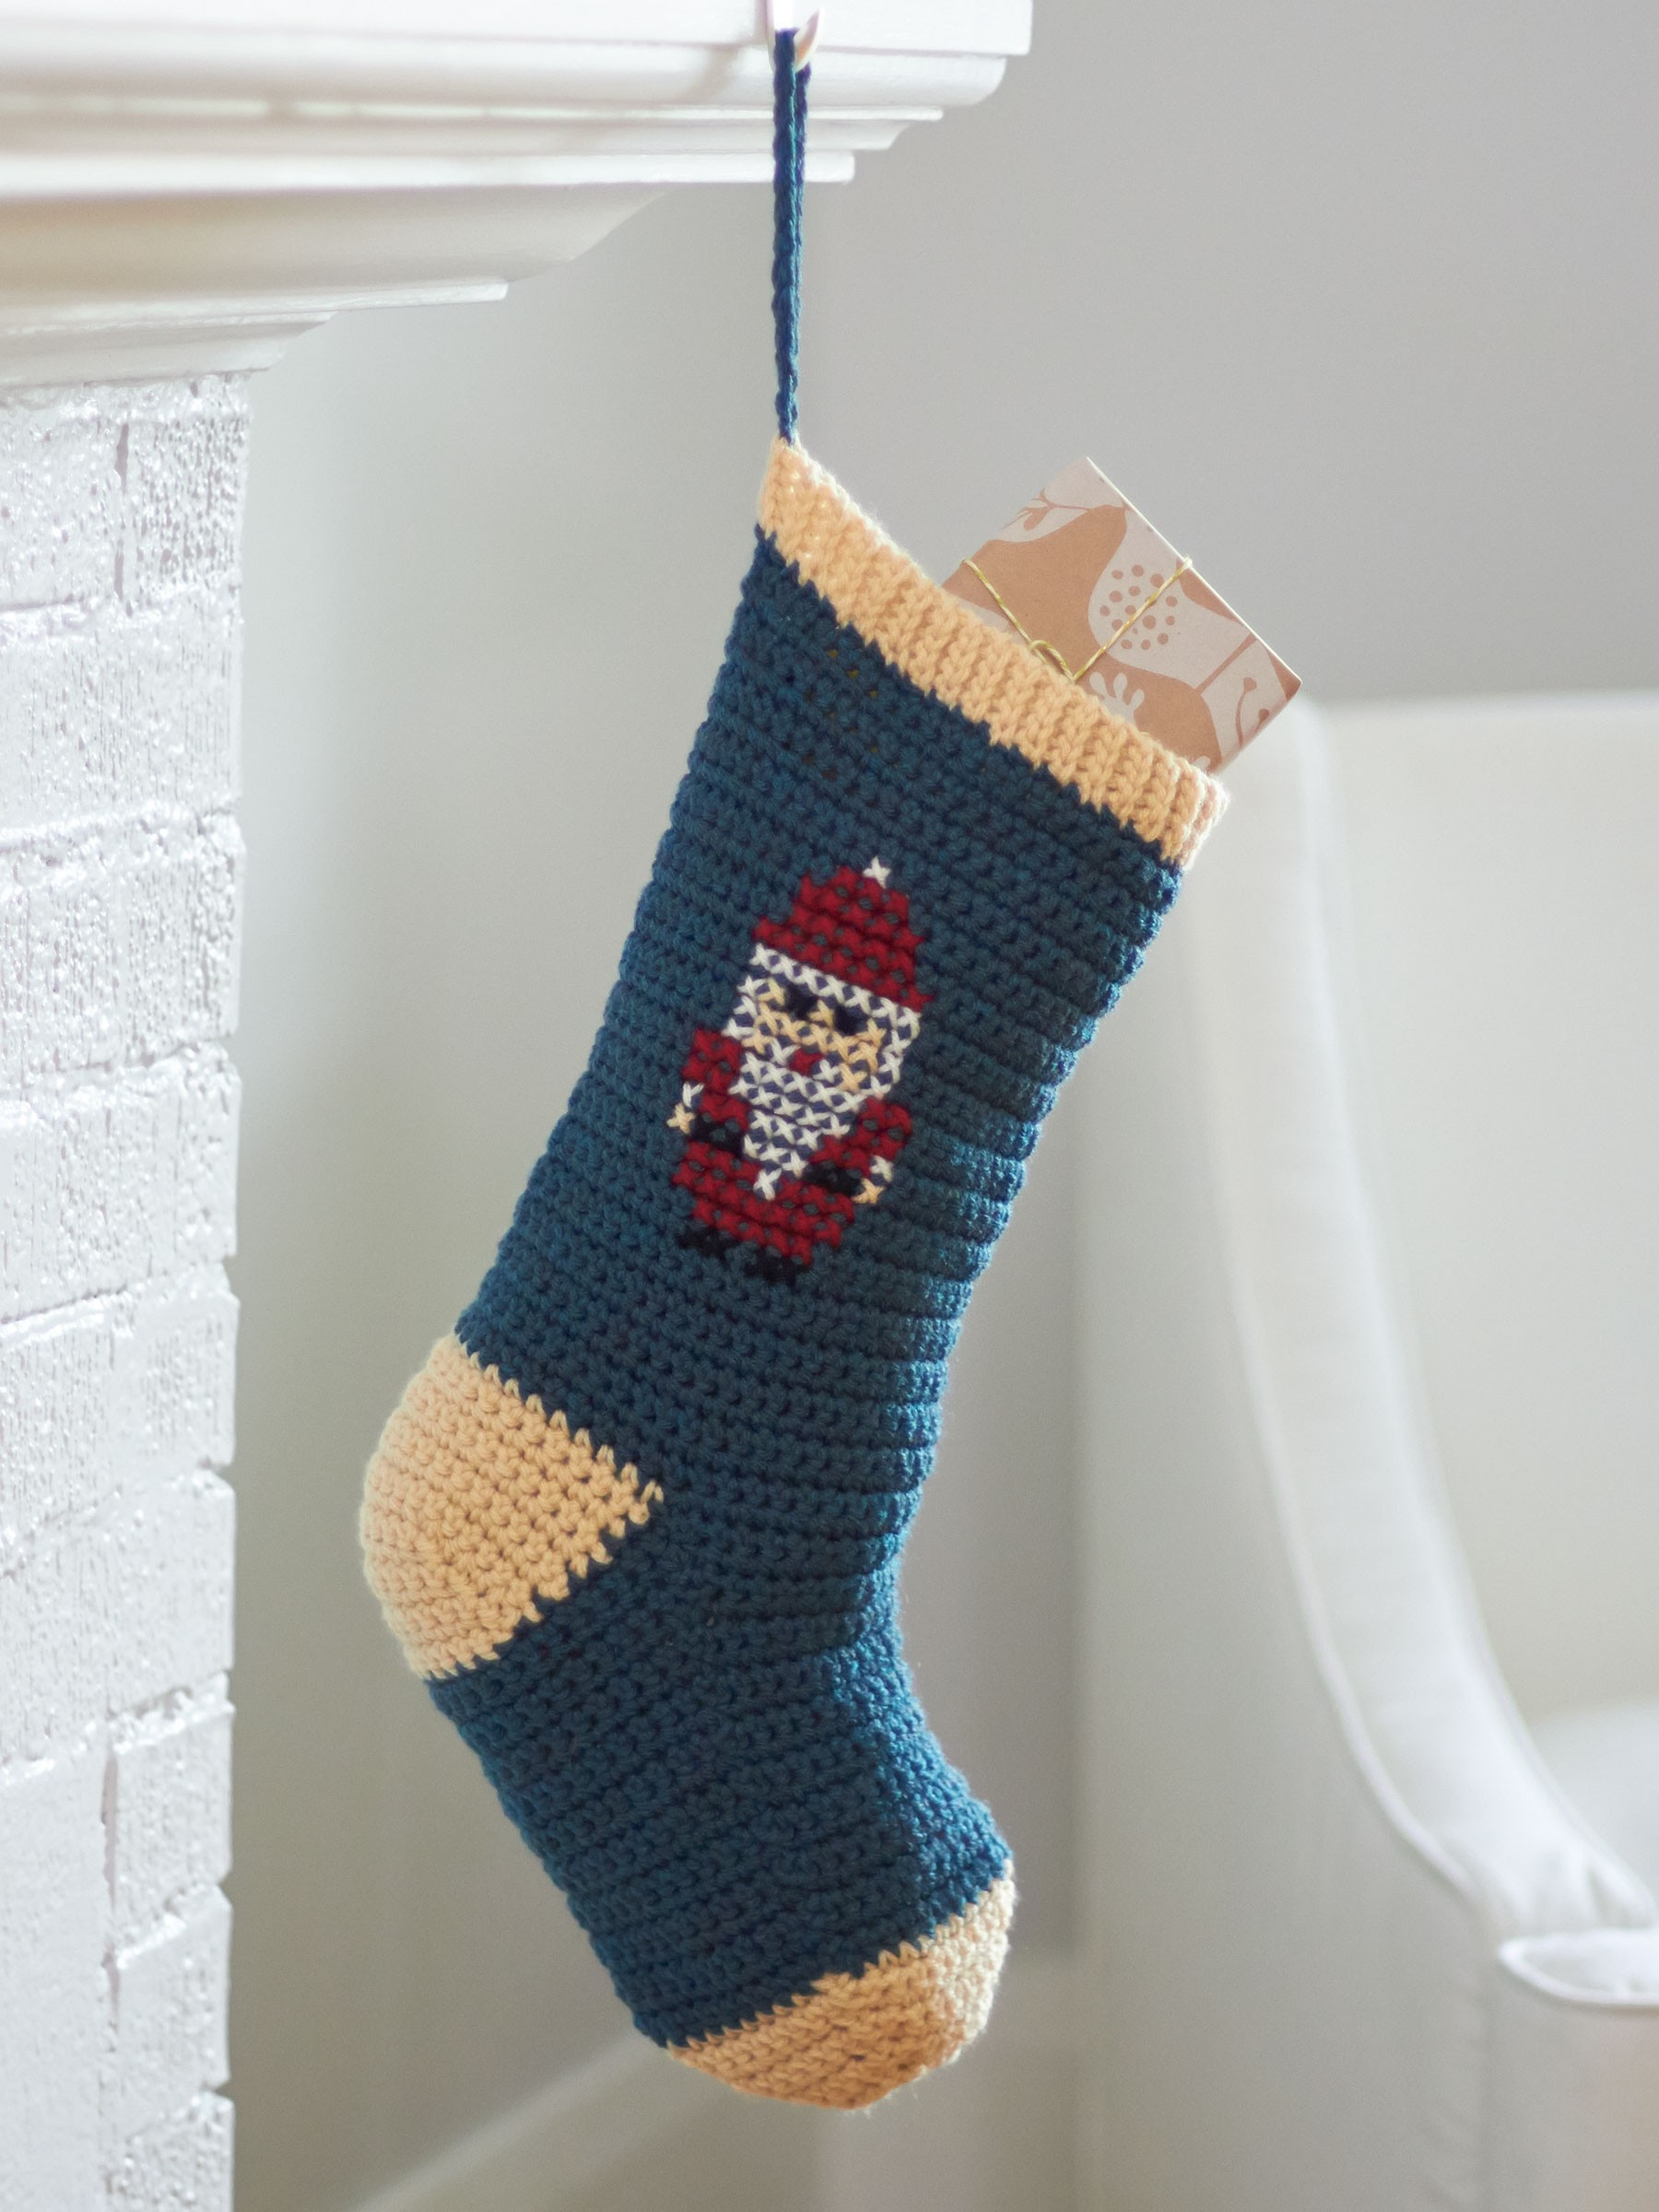 Best images collections hd for gadget windows mac android image result for knitted christmas stockings free patterns bankloansurffo Gallery